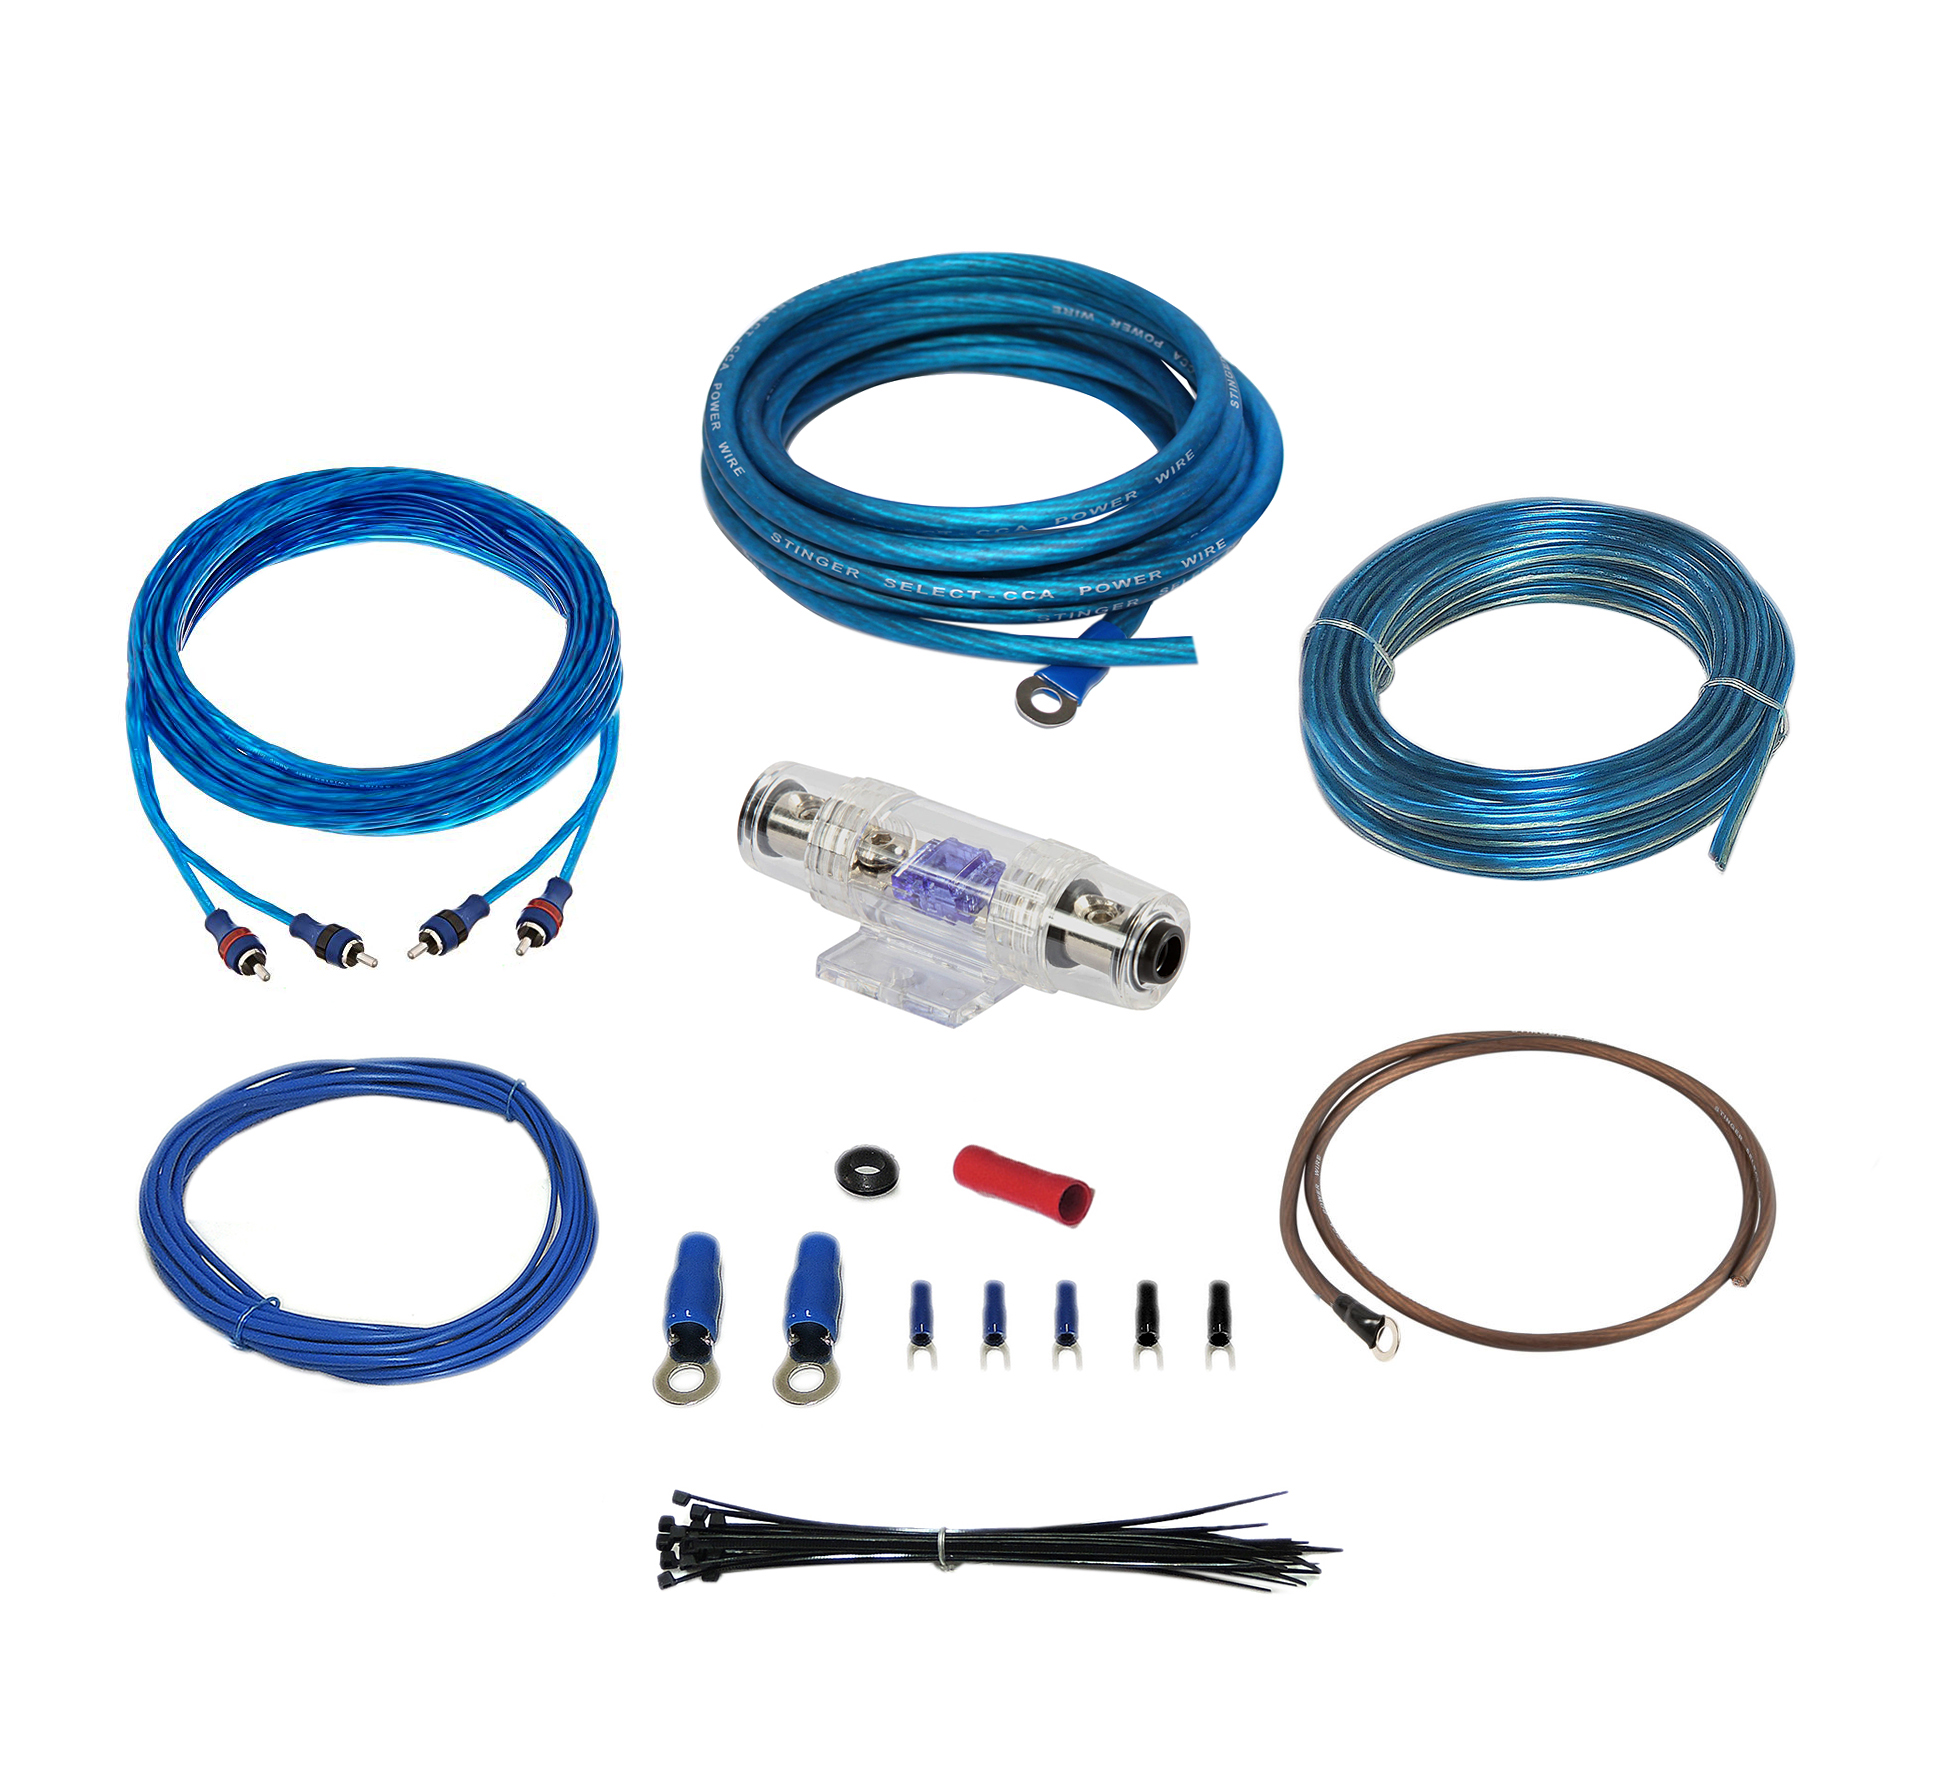 Stinger Select SSK8 Amplifier Wiring Kit 8ga 17 ft CCA Cable 600 Watts